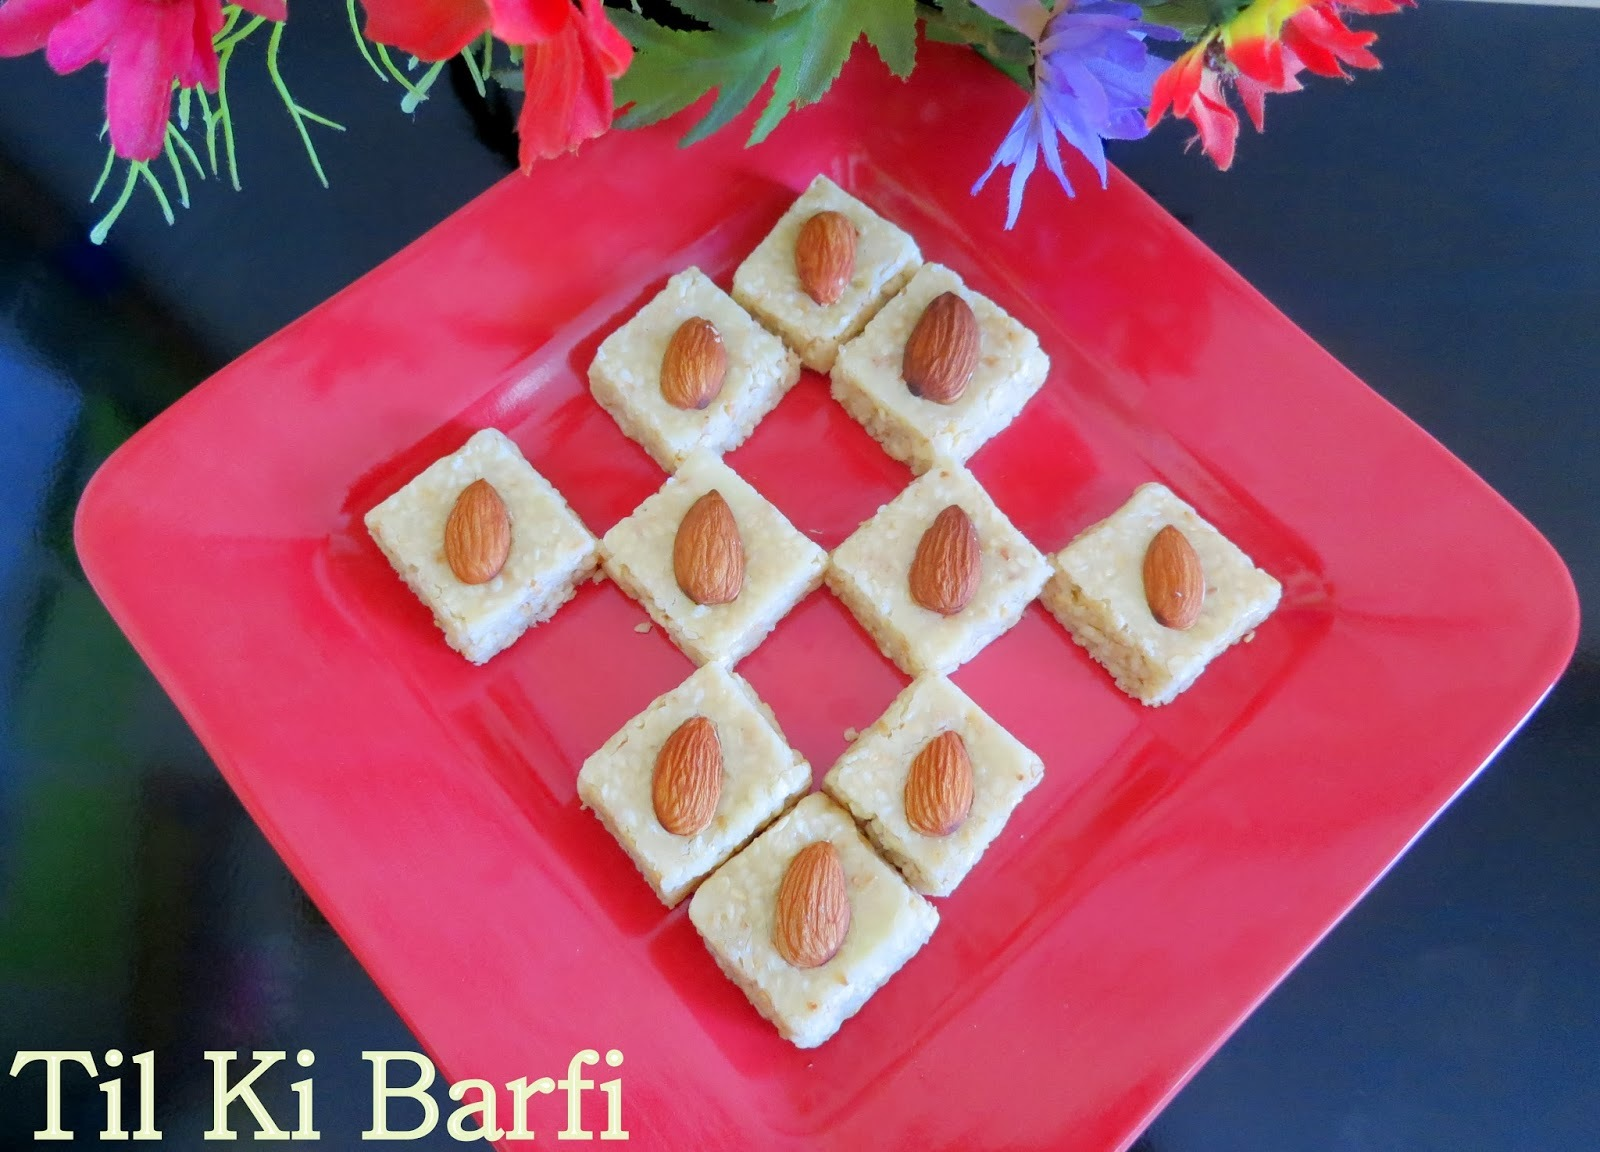 Til ki barfi using Milk Powder